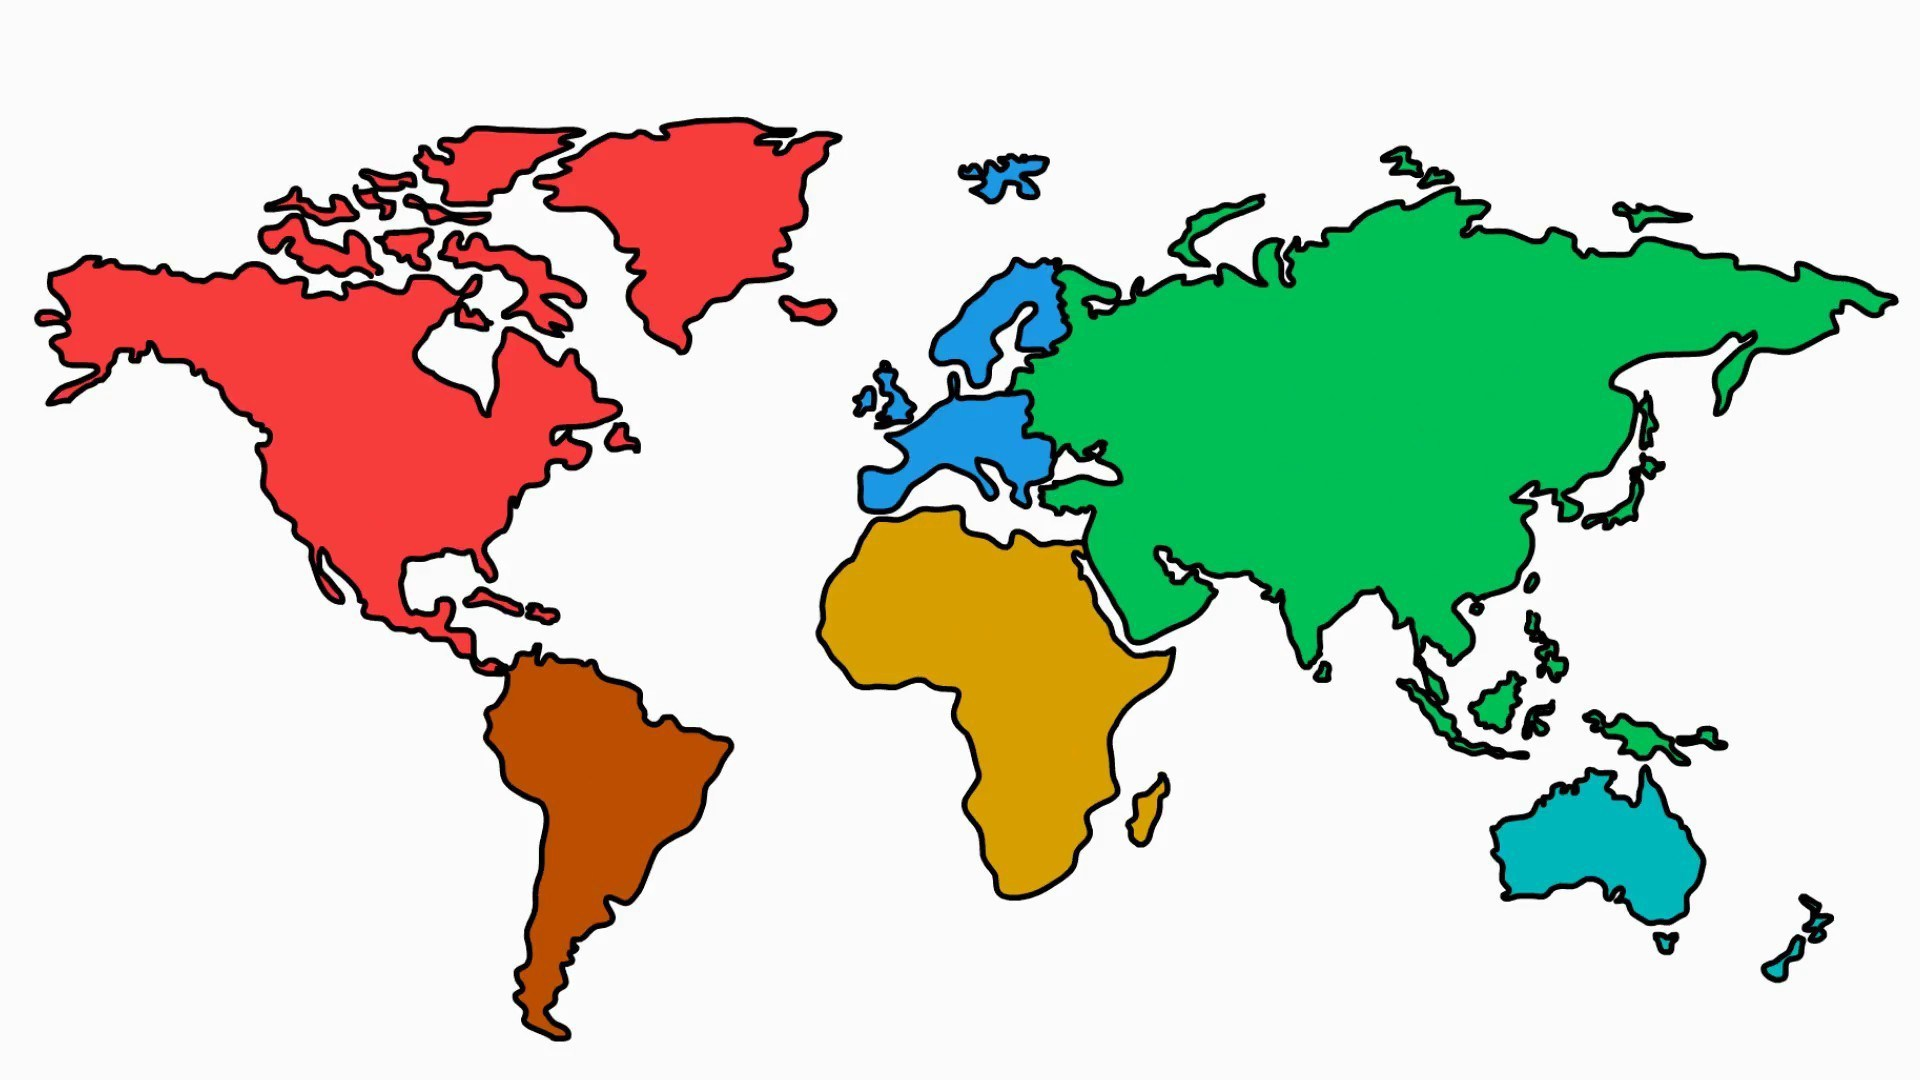 World map clipart at getdrawings free for personal use world 1920x1080 hd images wallpaper for downloads map clip art easy picture gumiabroncs Image collections